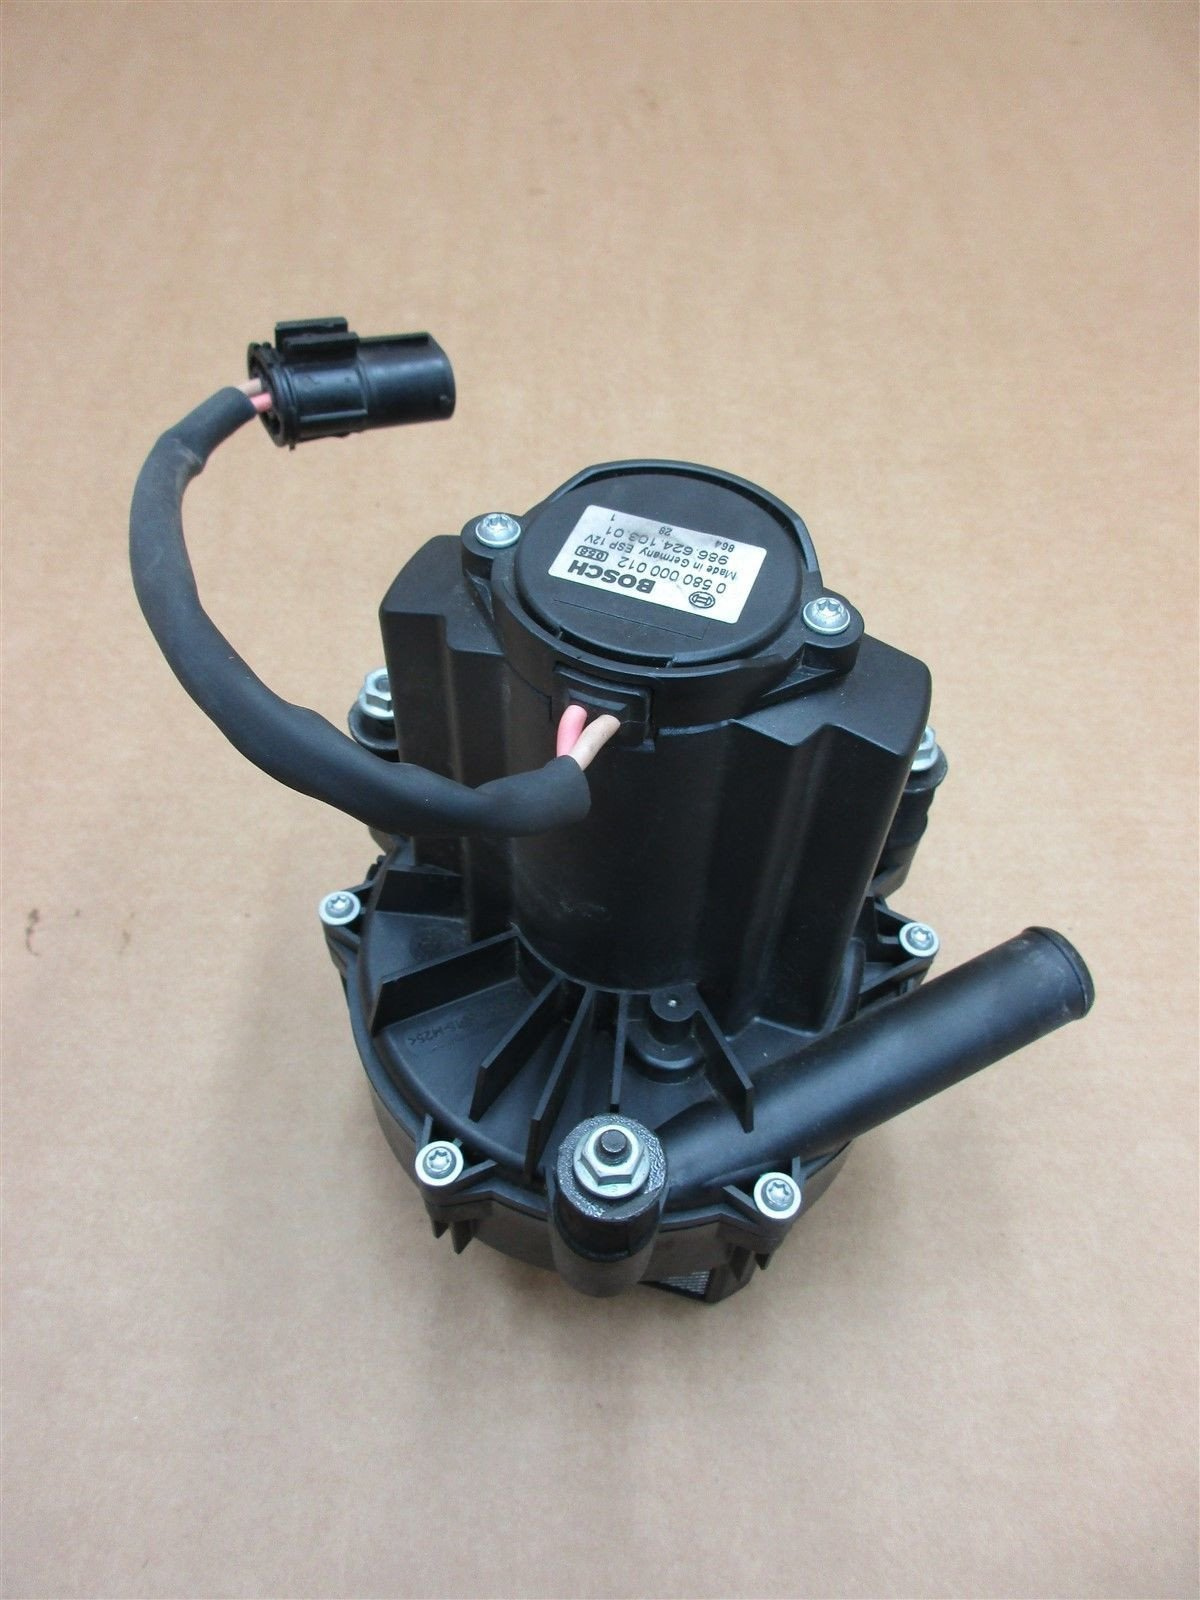 99 Boxster RWD Porsche 986 BOSCH COLD AIR INJECTION PUMP 98662410301 27,759